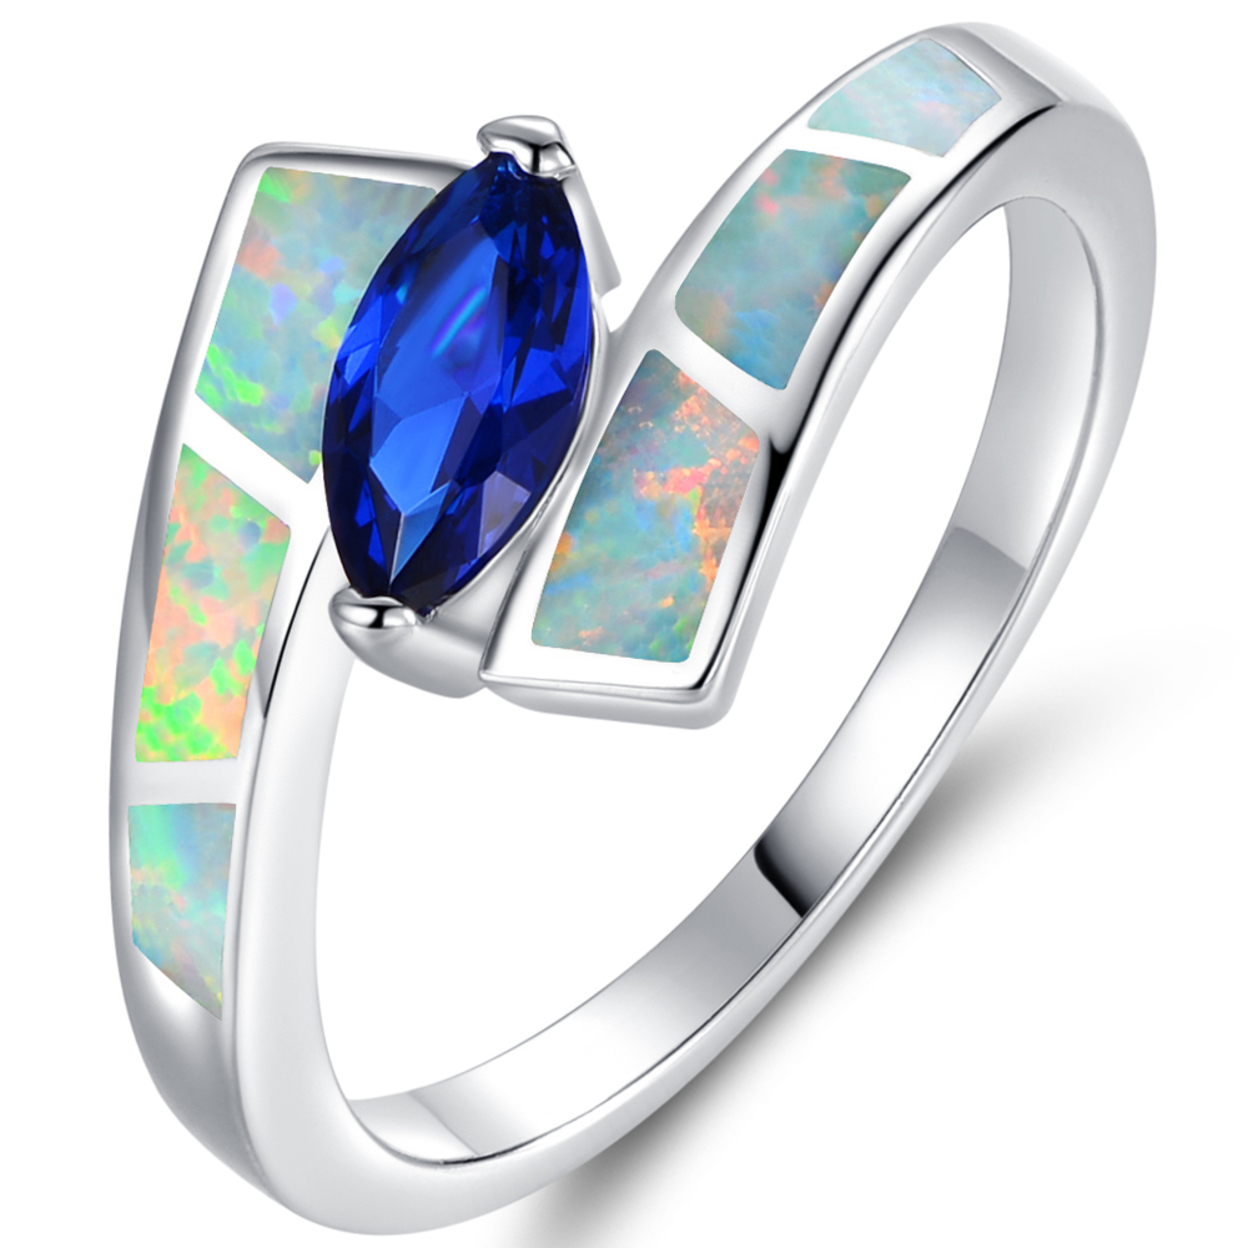 18k White Gold Plated Marquise-cut Blue Spinel & Opal Bypass Ring R1664-27 Size 5